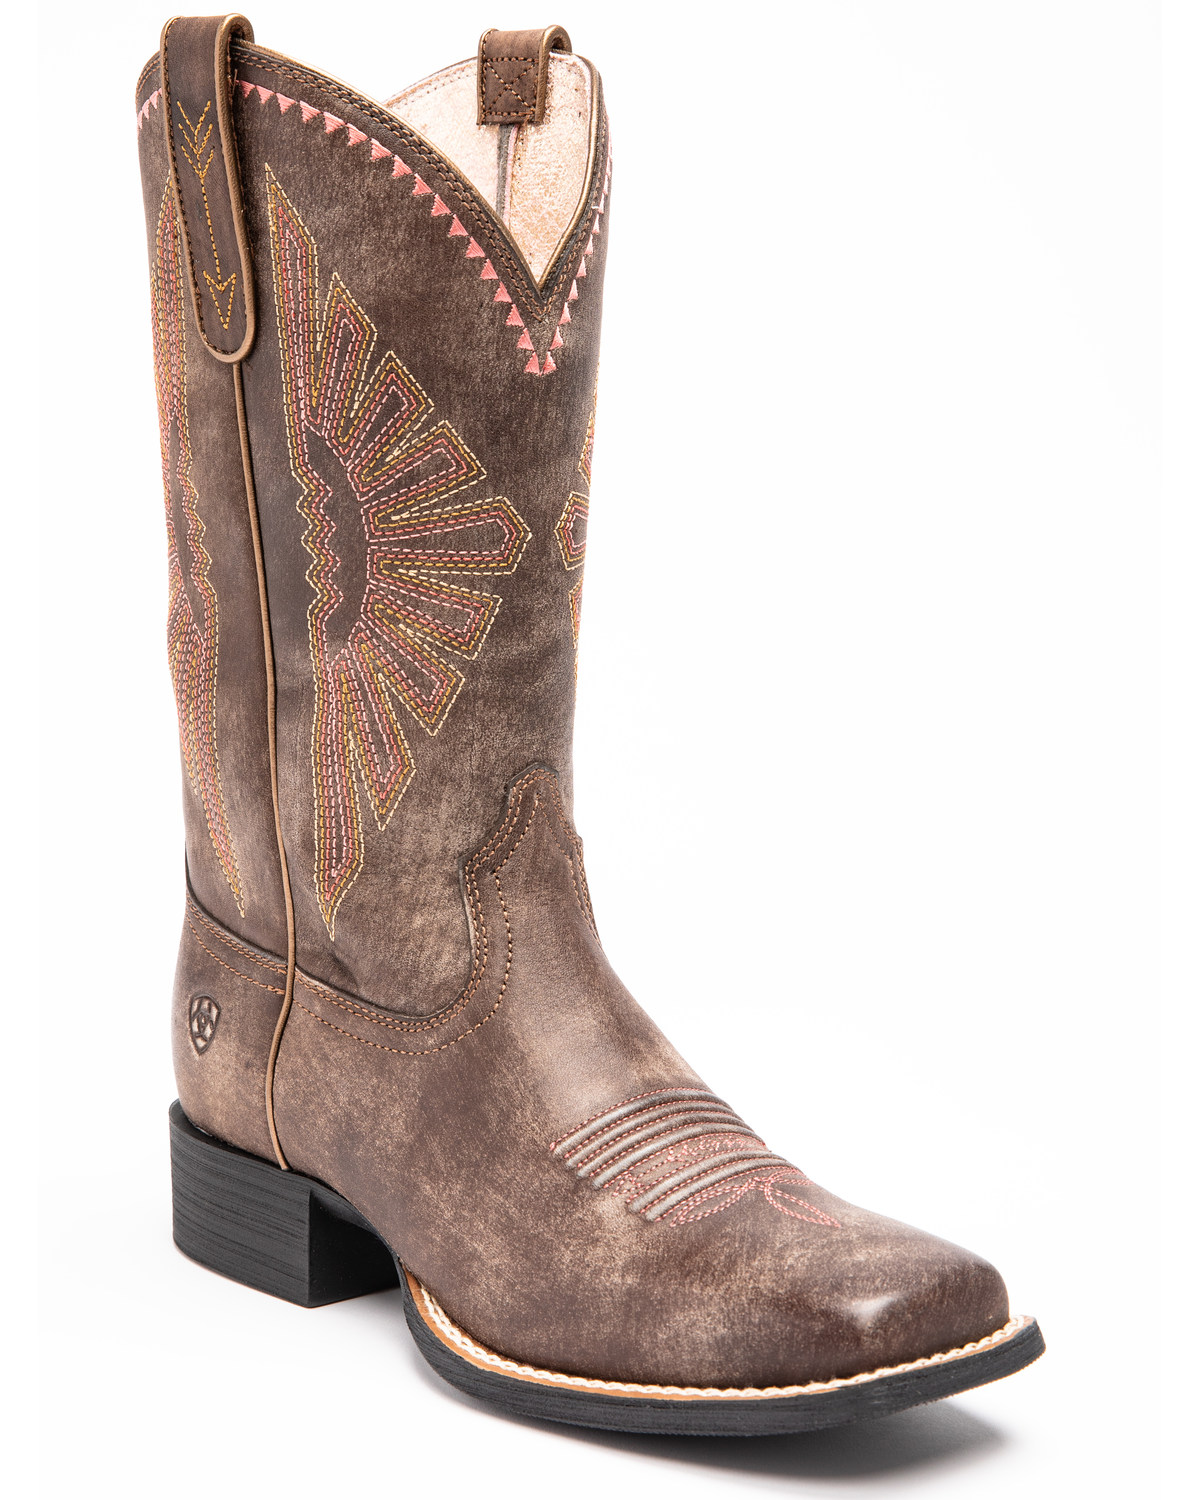 760572d7661 Ariat Women s Round Up Rio Western Performance Boots - Square Toe ...